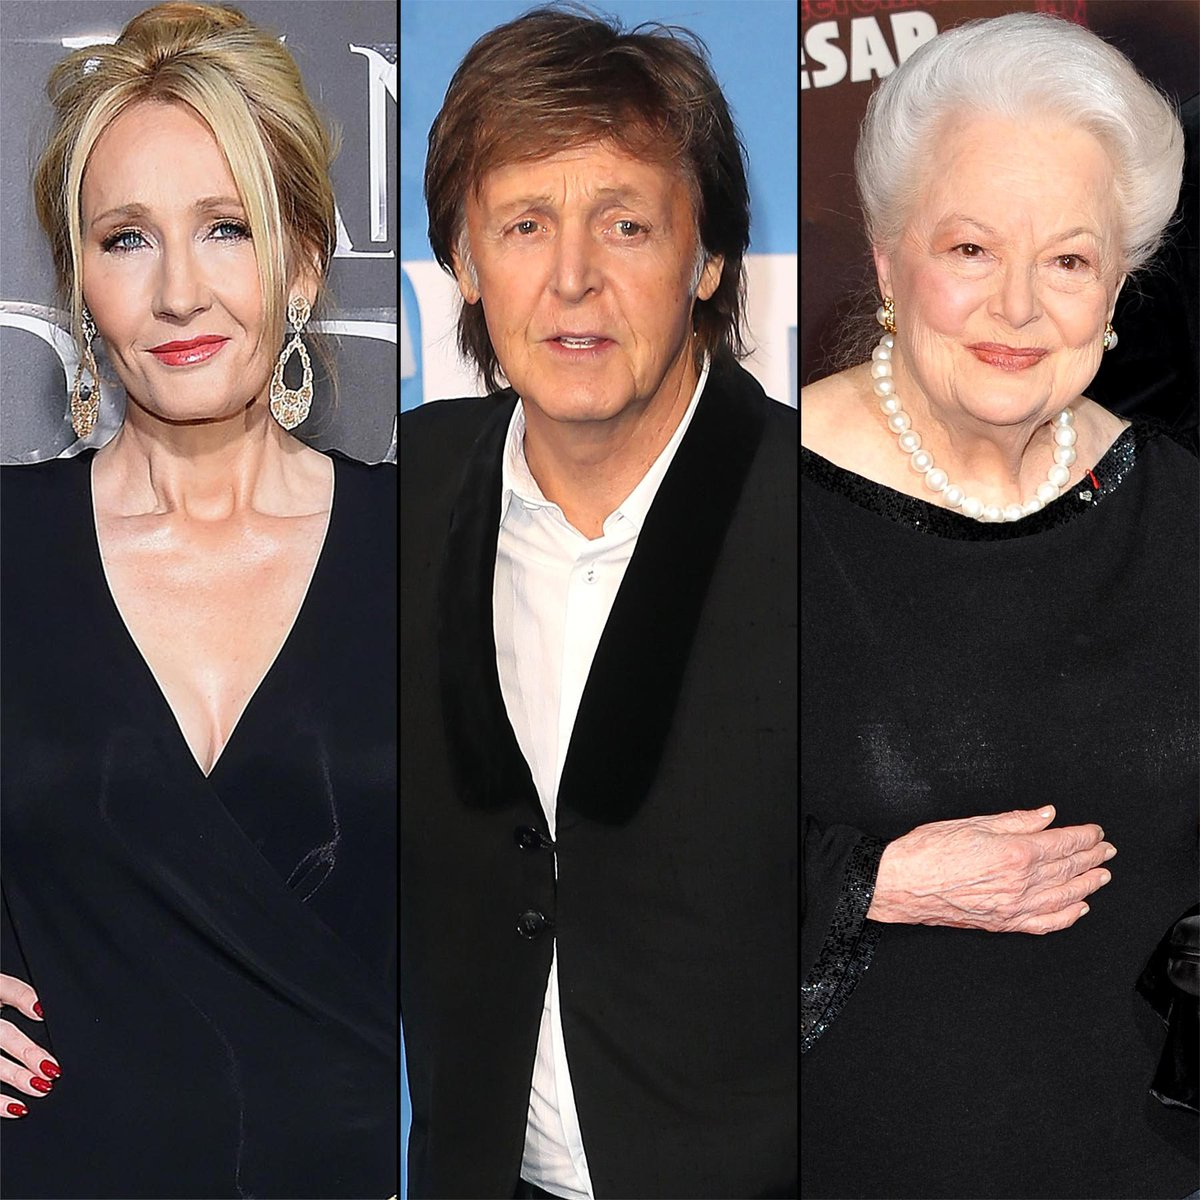 J.K. Rowling, Paul McCartney and Olivia de Havilland receive Queen's Birthday Honors: